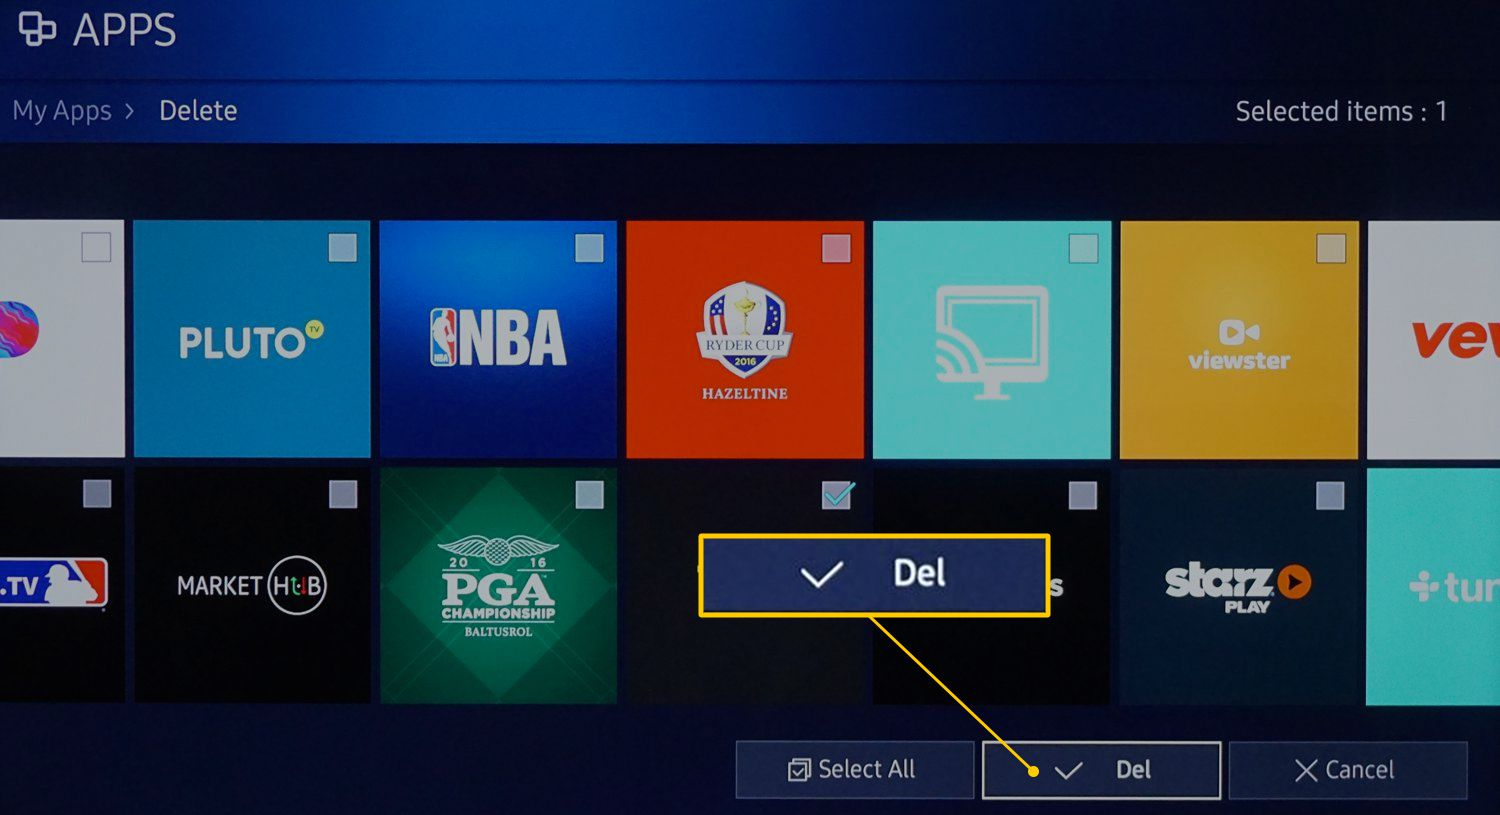 How to Delete Apps on a Samsung Smart TV